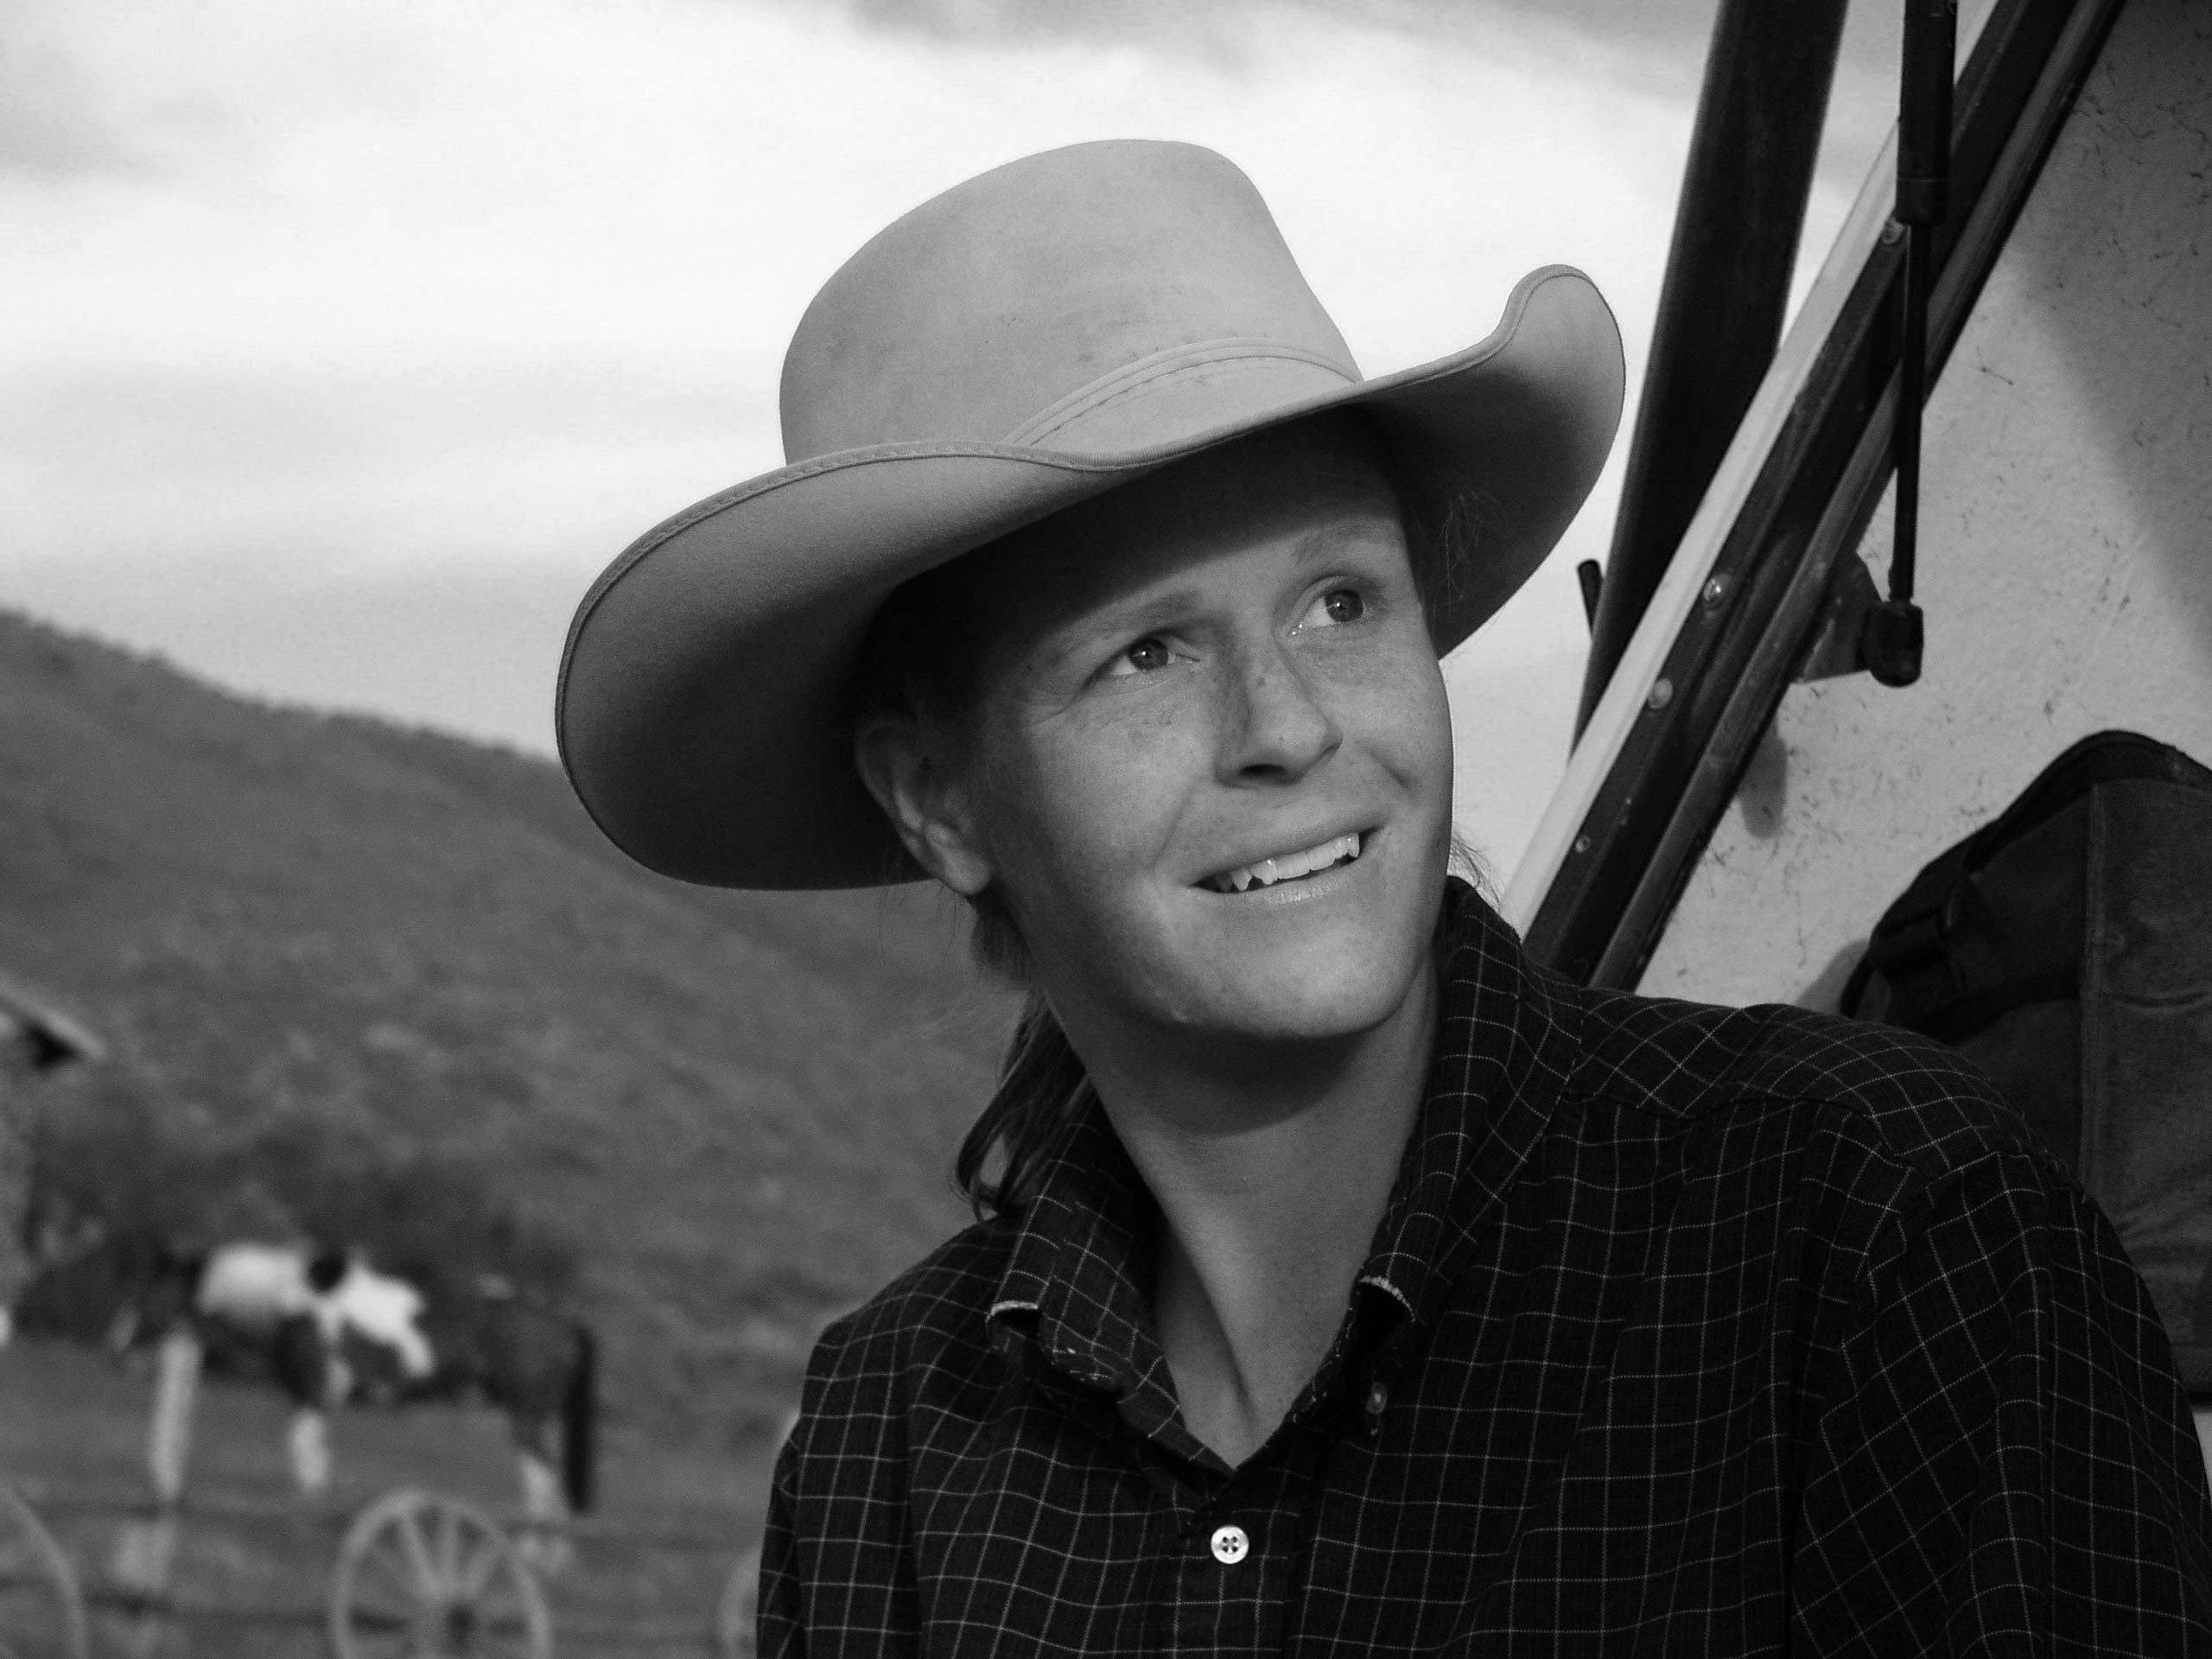 Becky Prunty, Rancher, Charlston, Nevada, 2002